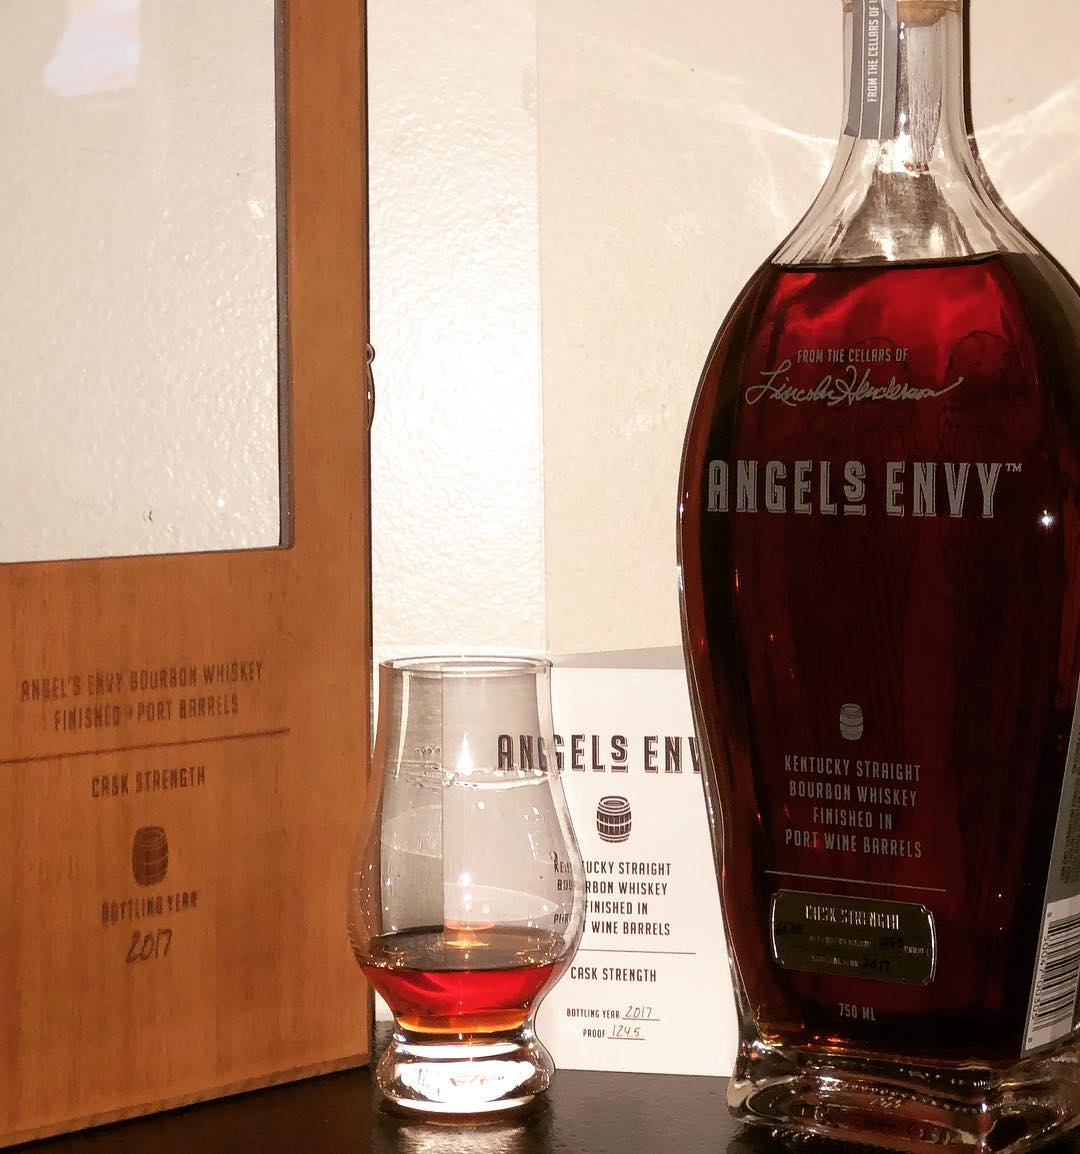 Stop into Local Whiskey to liven up those rainy day blues with our featured bourbon, Angels Envy Cask Strength 2017! *** An extremely robust bourbon, coming in at 124.5 Proof. Let it rest, and see how it develops in your glass. Bouquet of berries, oak and